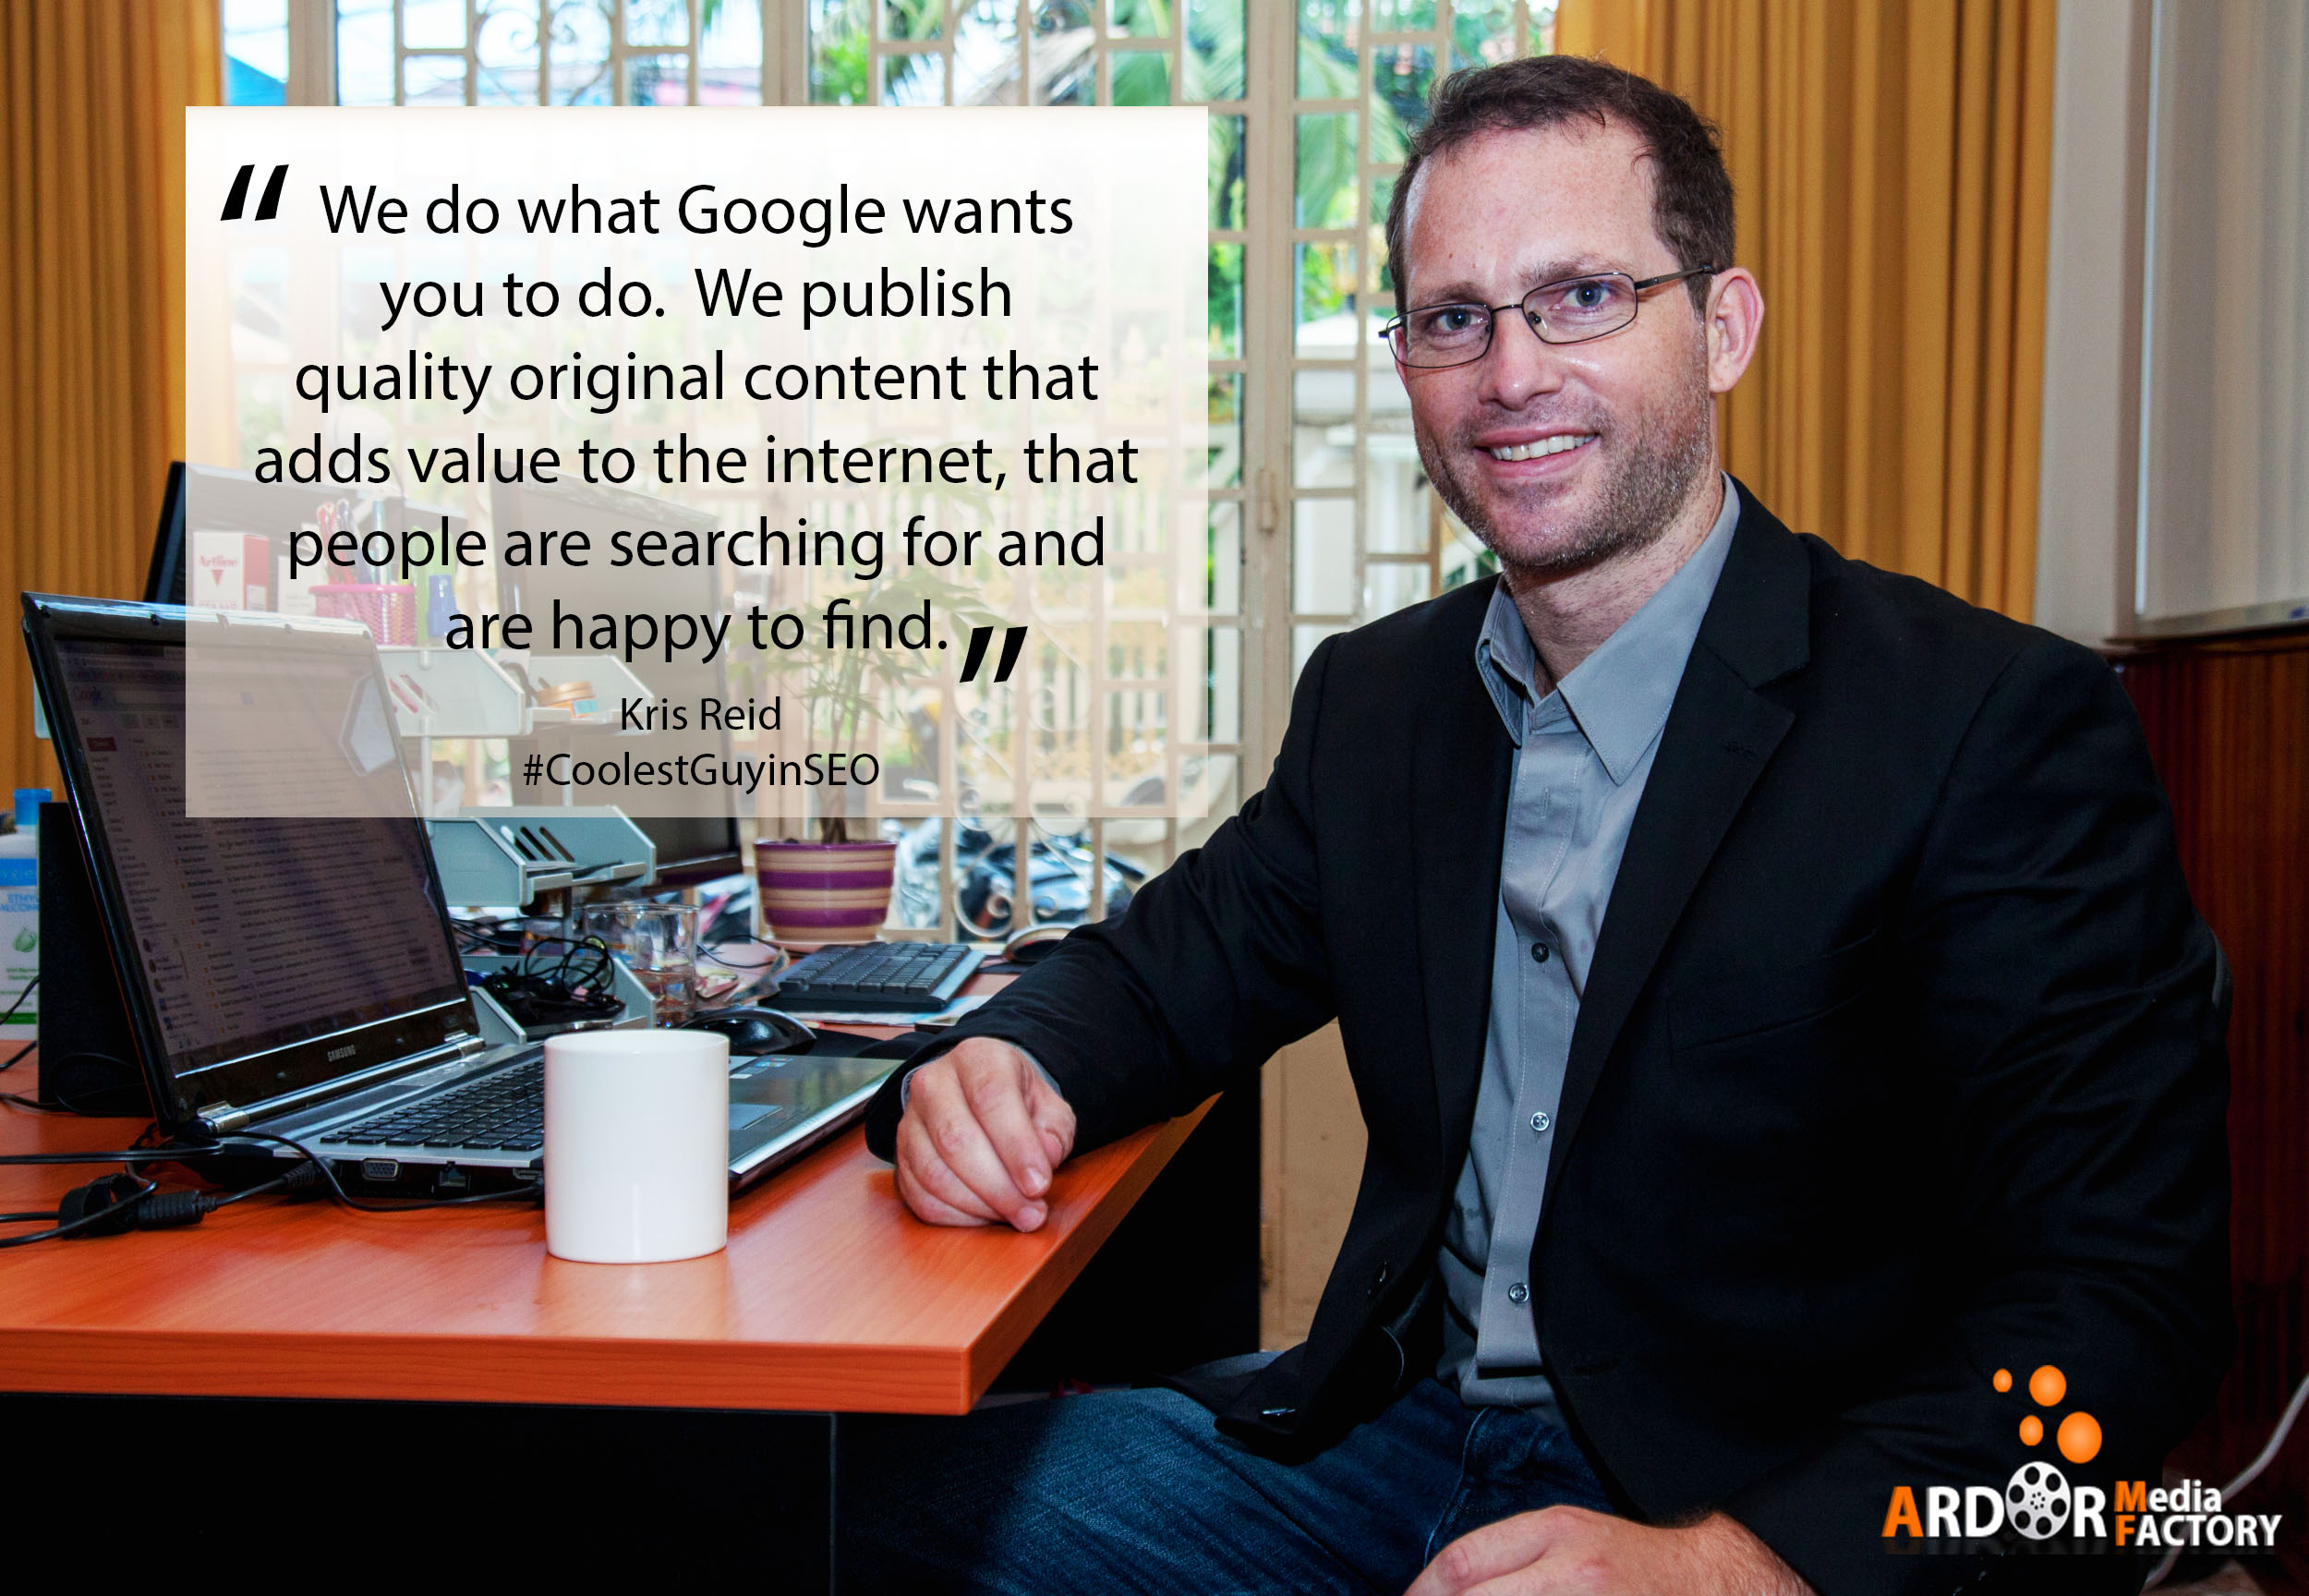 Kris Reid, the coolest guy in SEO, publishes quality content and adds value to the internet.